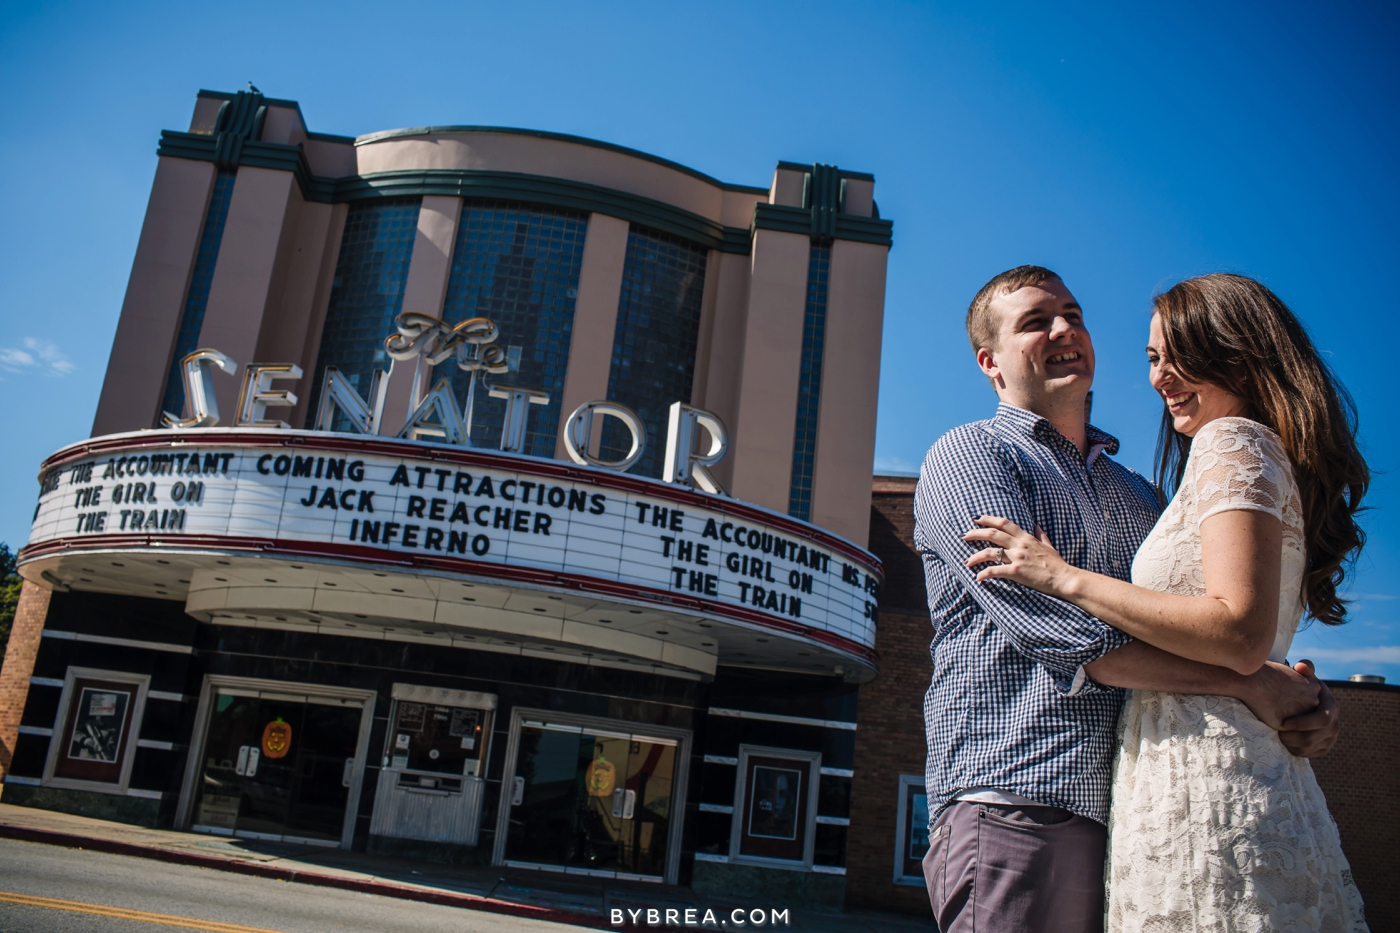 Senator Theater engagement couple standing outside of theater